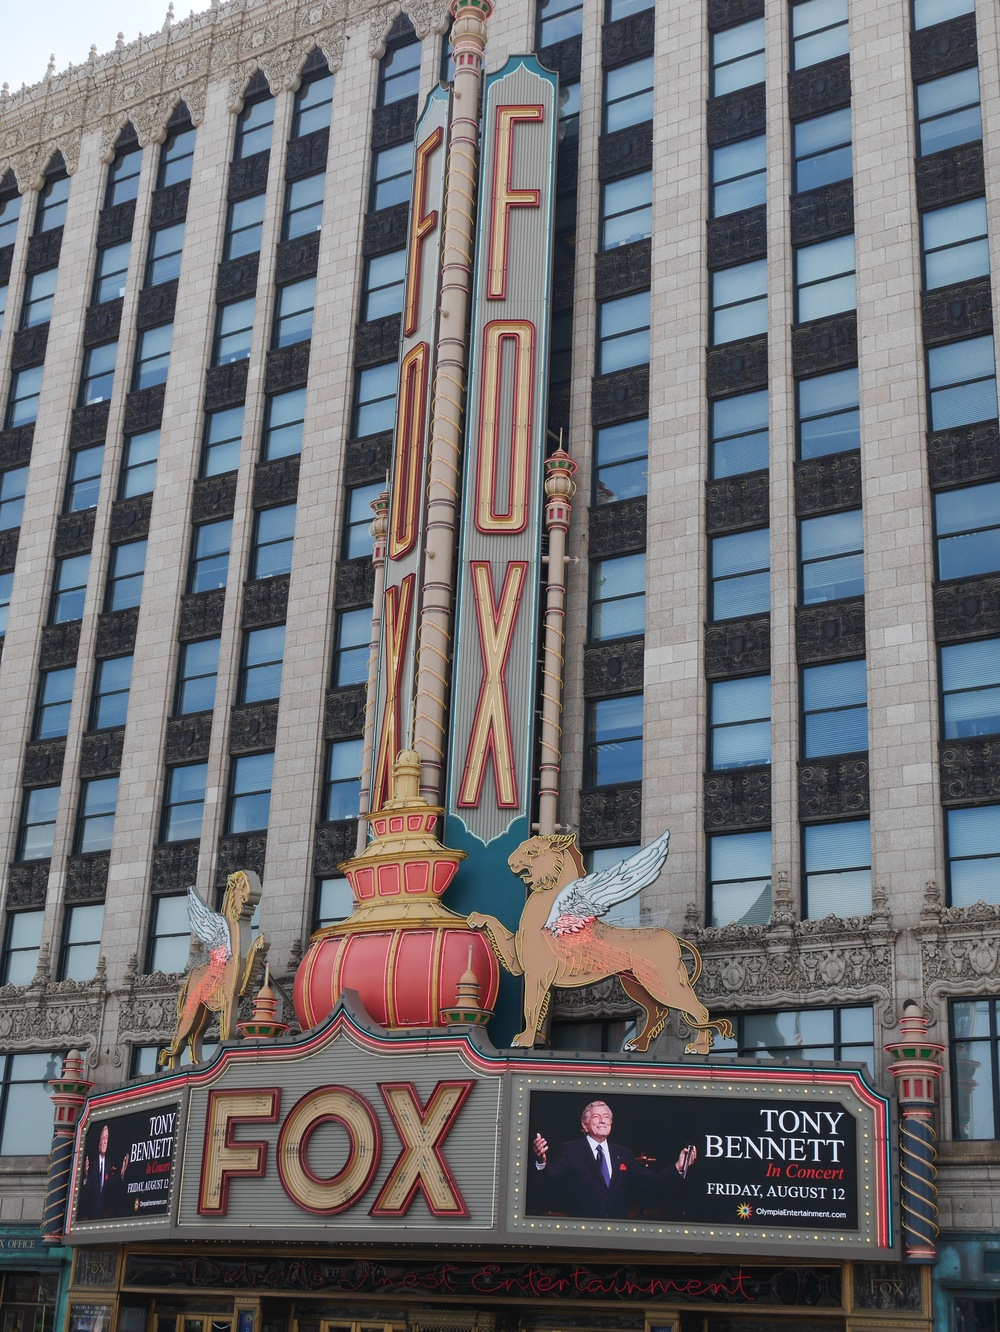 Check out a show at the Fox Theatre